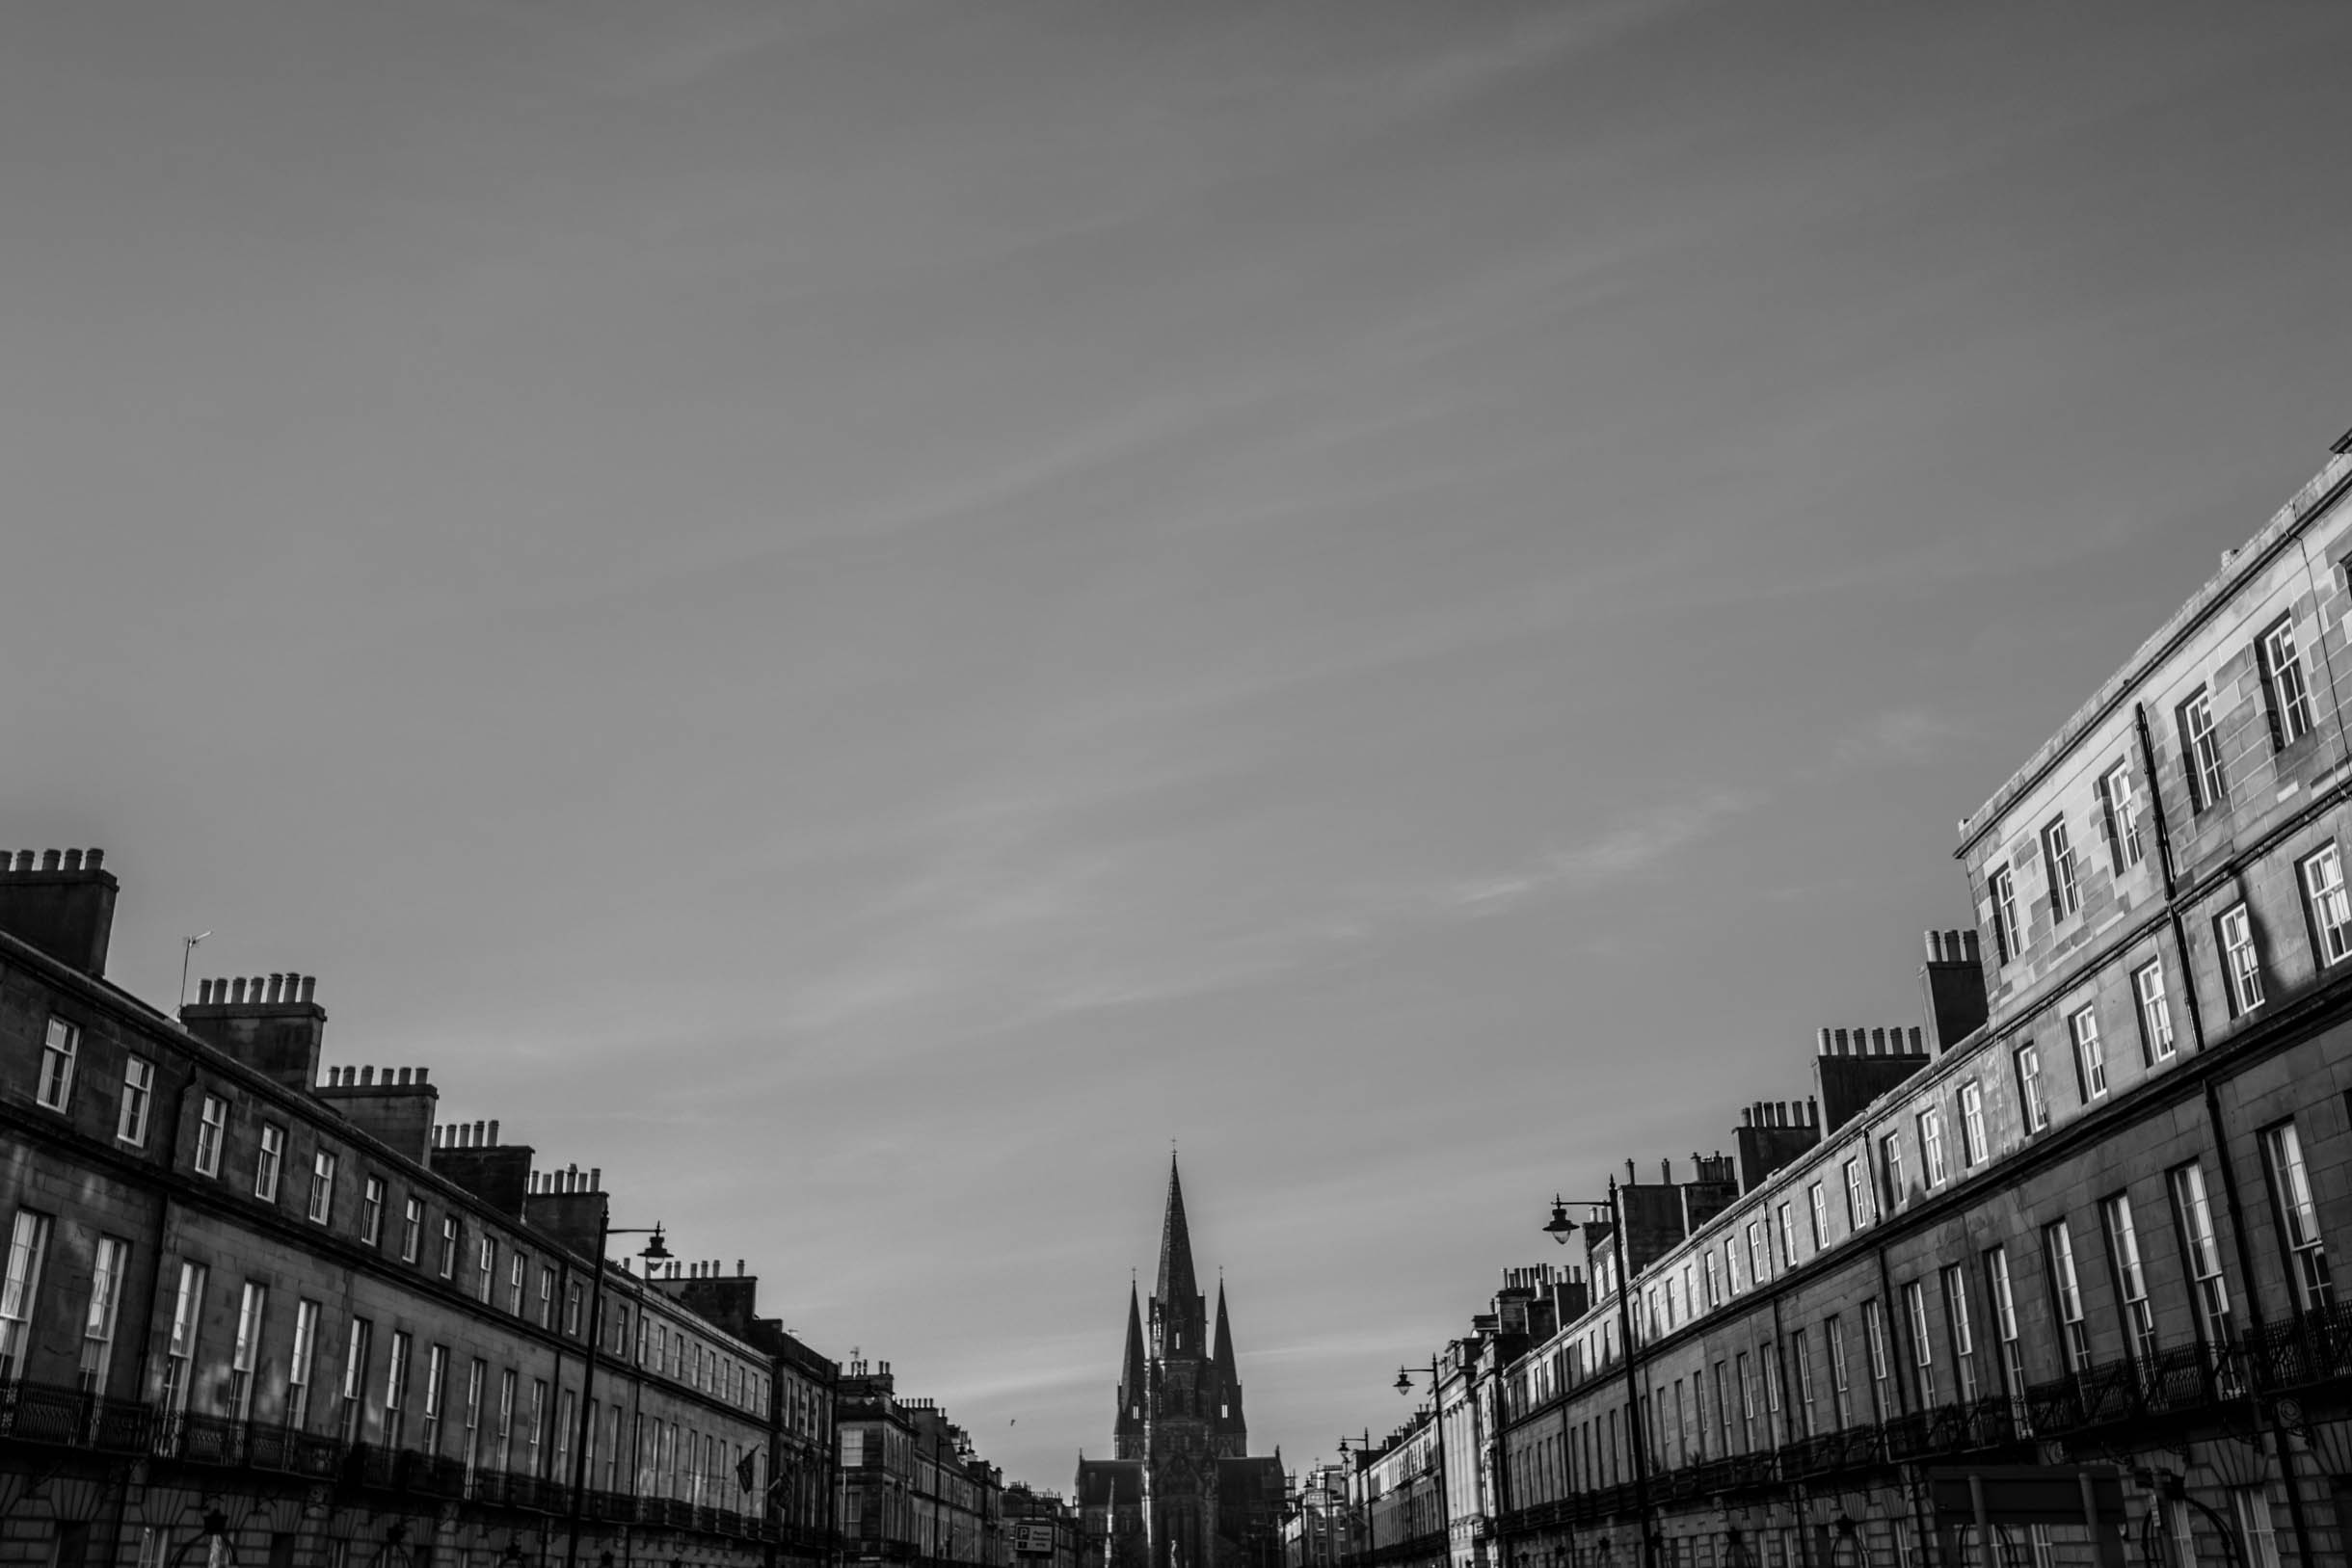 Picture Taken While Exploring Edinburgh - Cathedral in Edinburgh